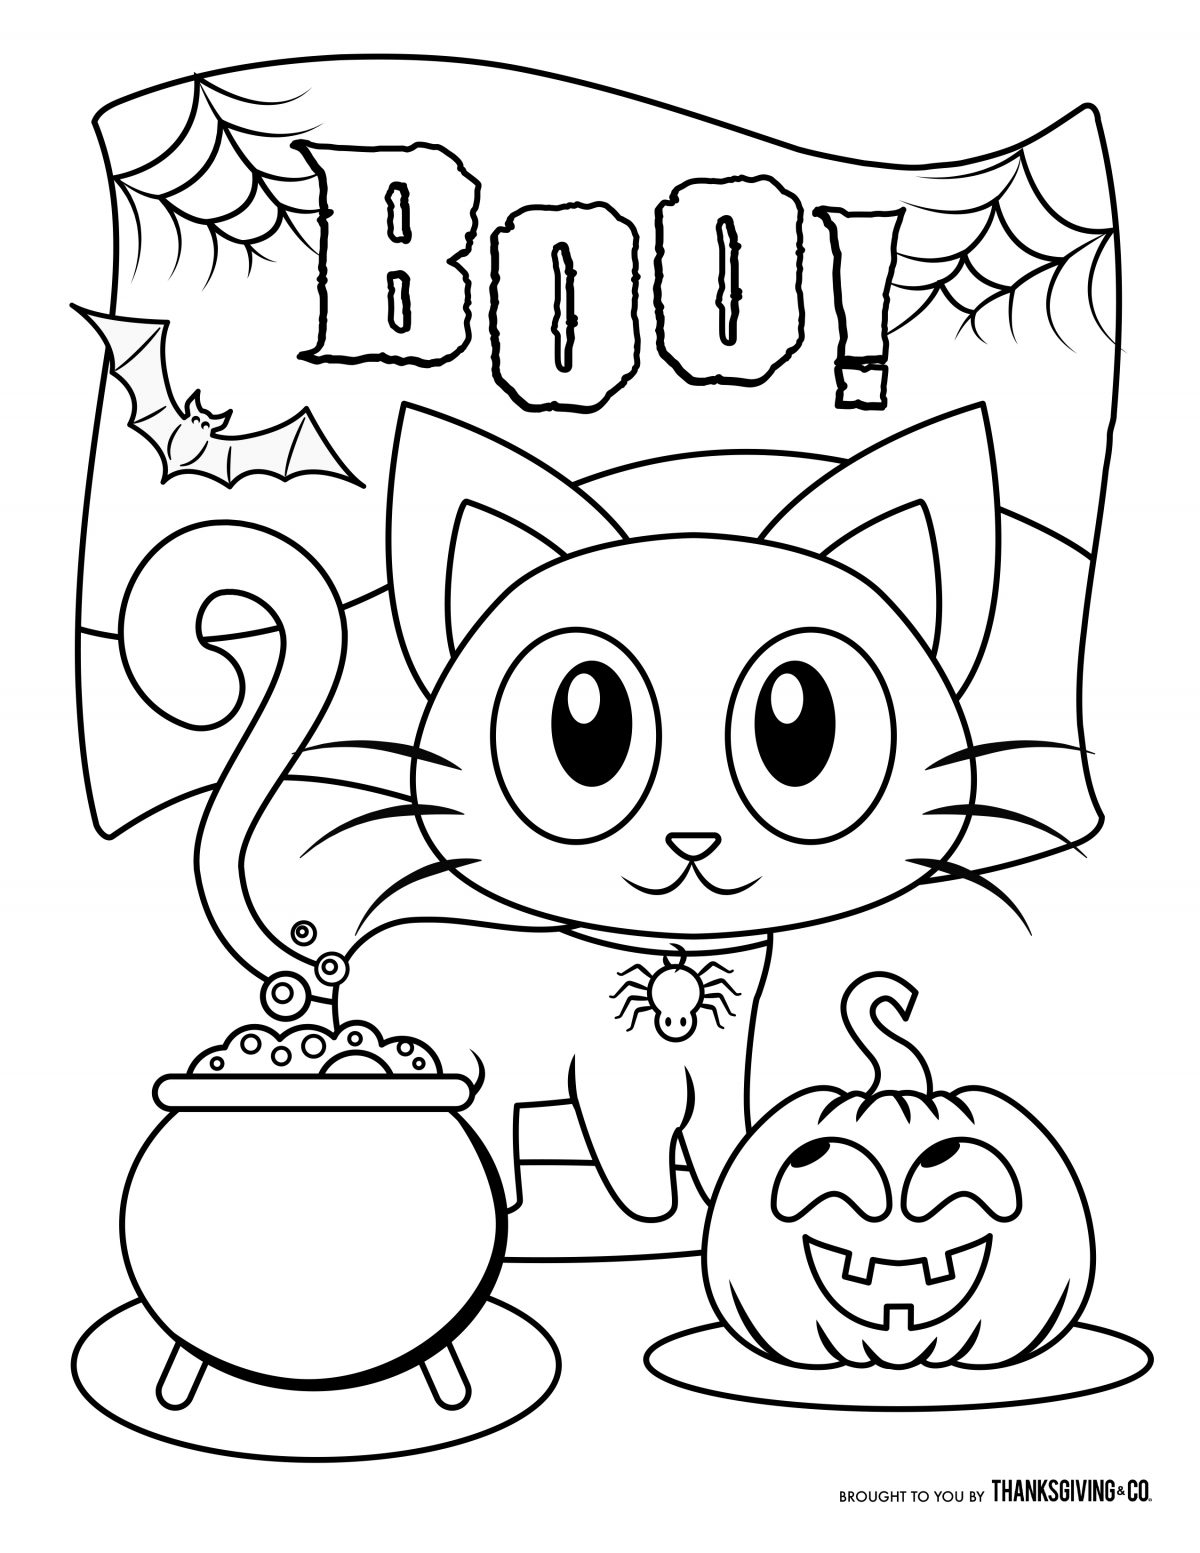 Free Scary Halloween Coloring Pages Scary Stuff For Kids Coloring Pages With Free Halloween Or The Kid